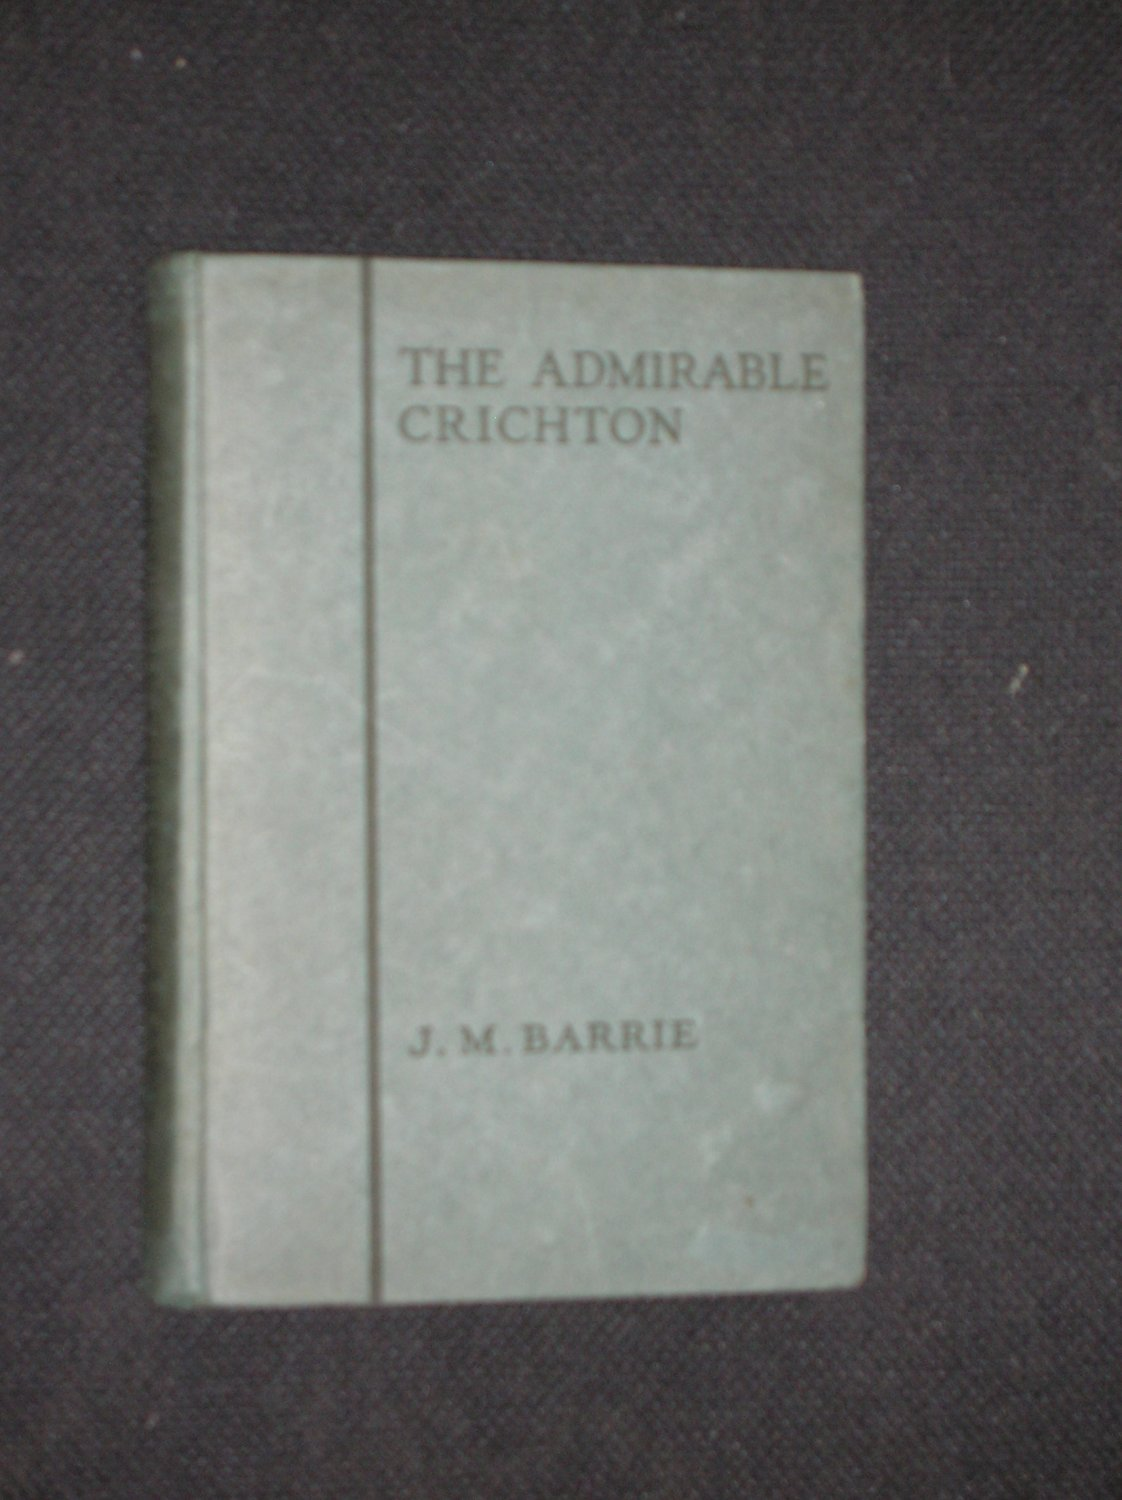 The Admirable Chrichton (First American Ed. 1925)